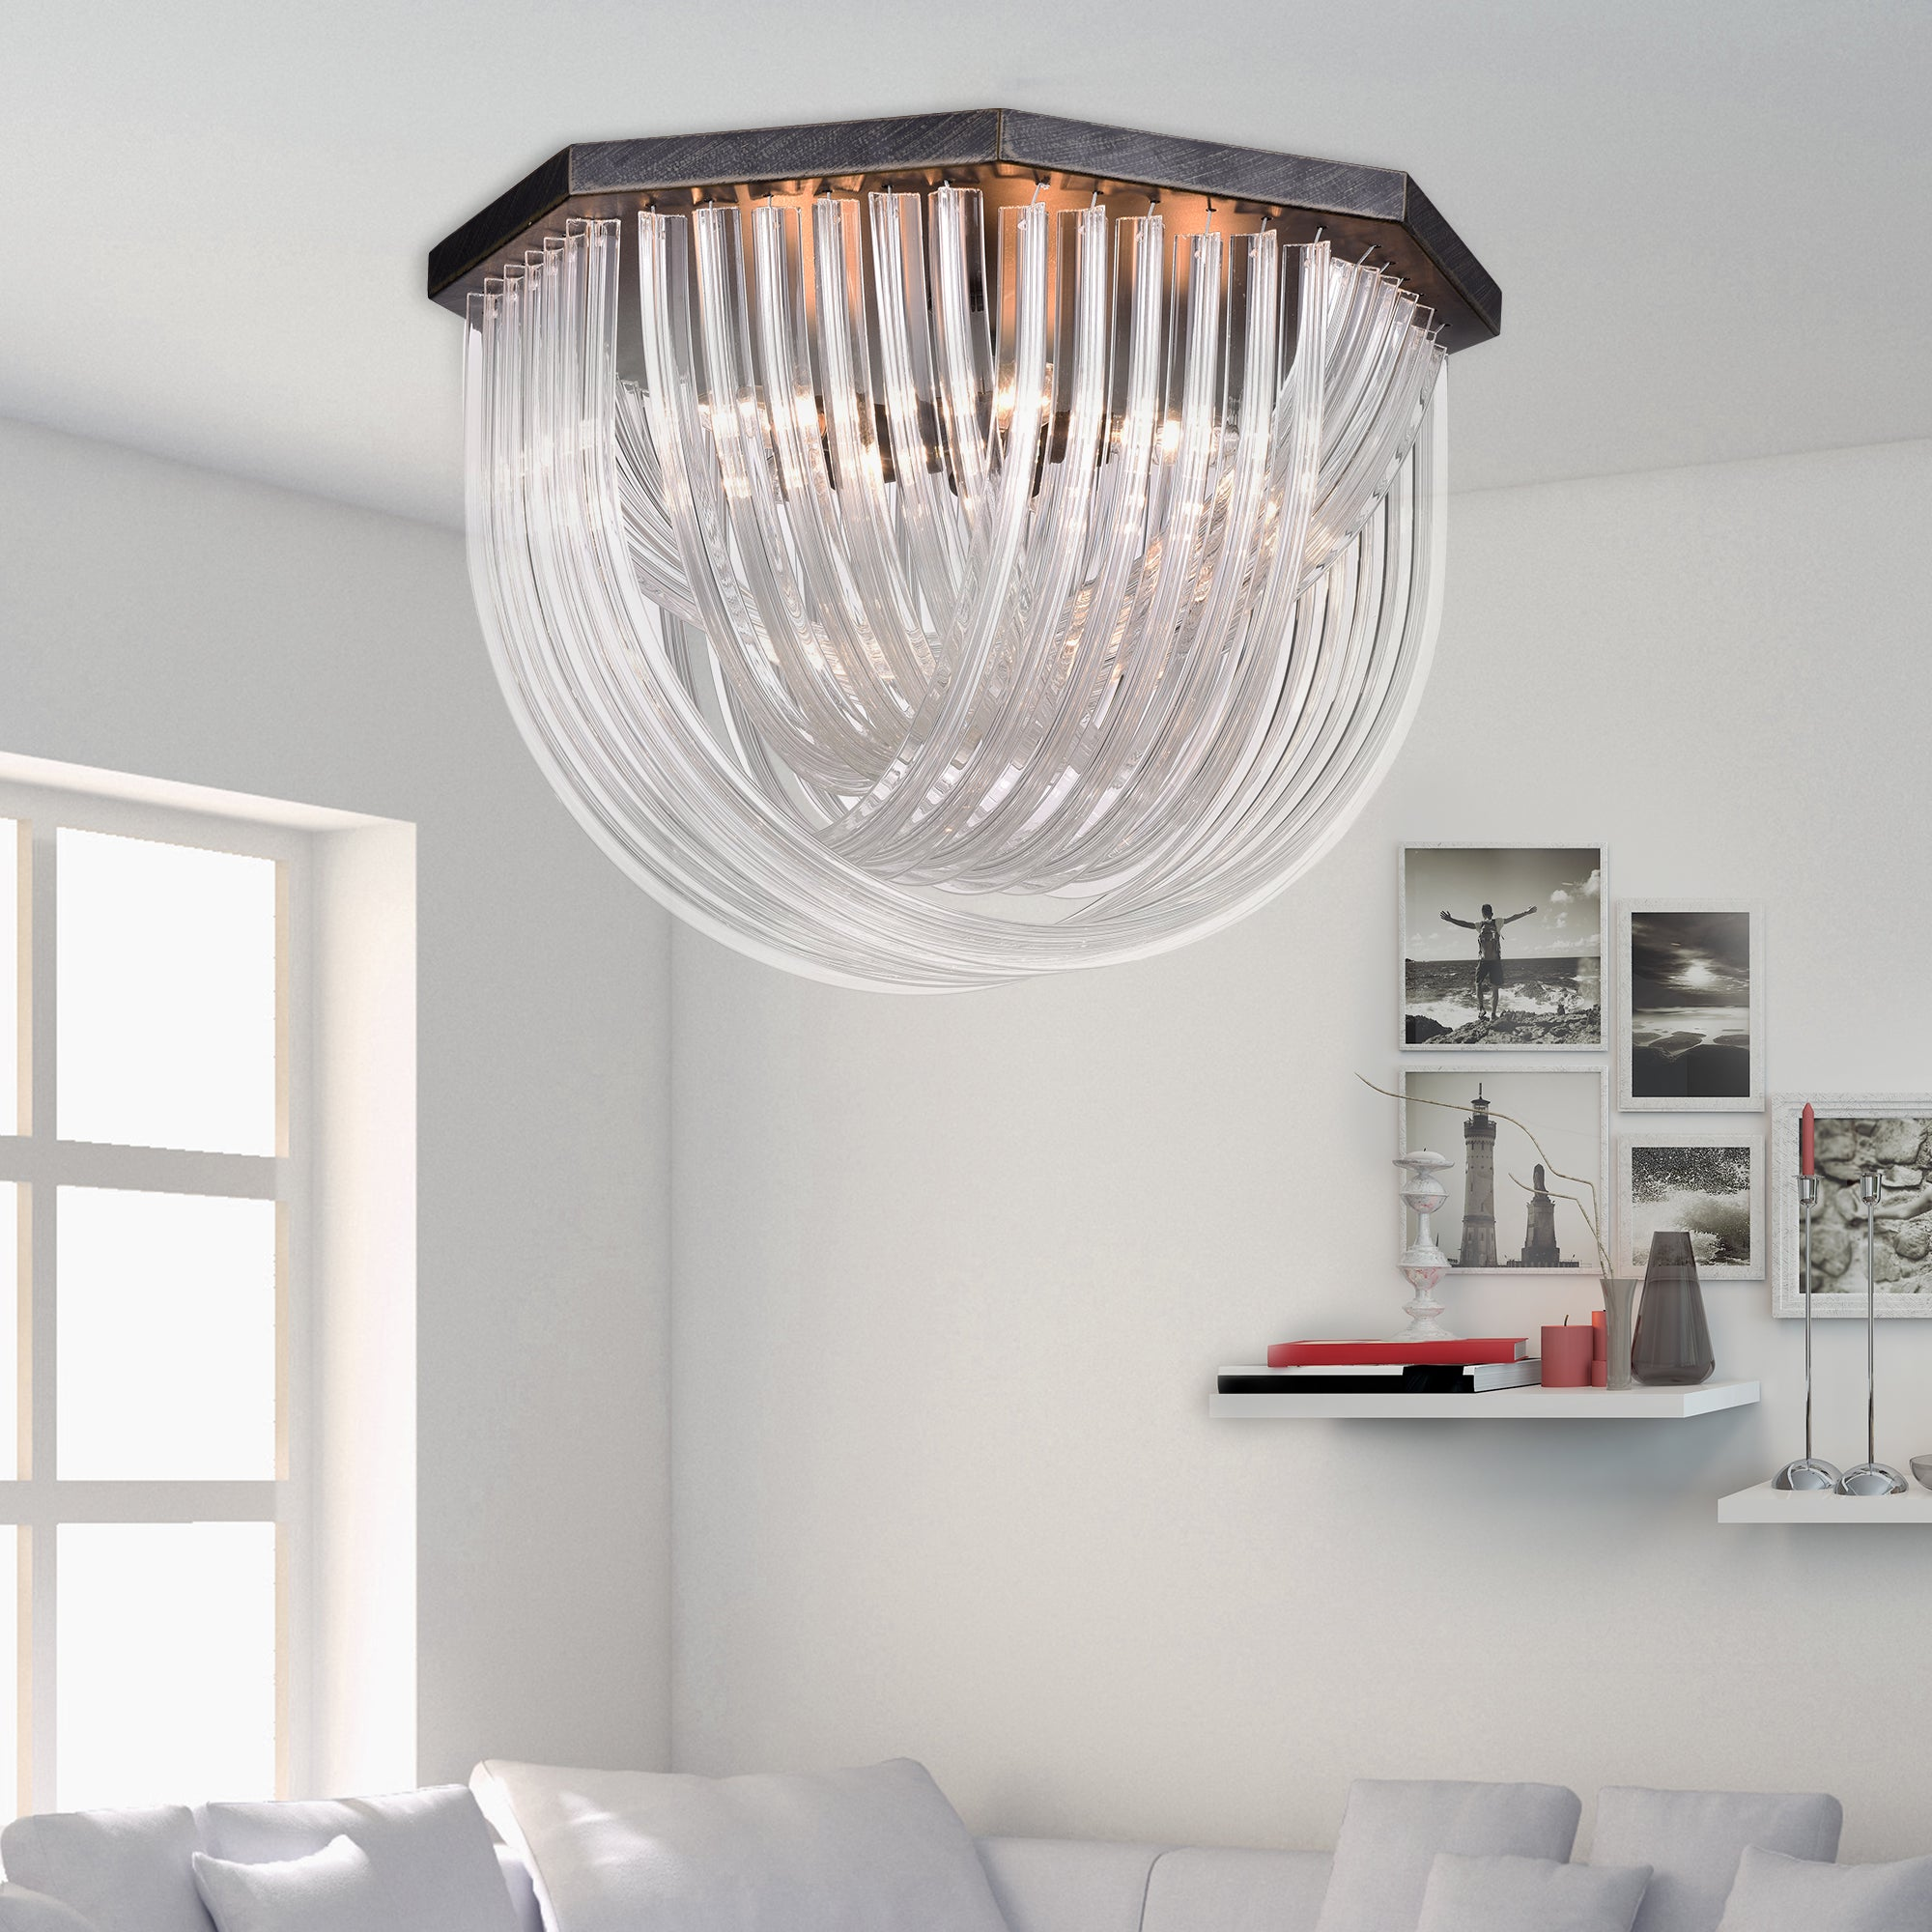 Samanta antique black overlapping curved glass 6 light flush mount samanta antique black overlapping curved glass 6 light flush mount chandelier free shipping today overstock 19000071 arubaitofo Image collections